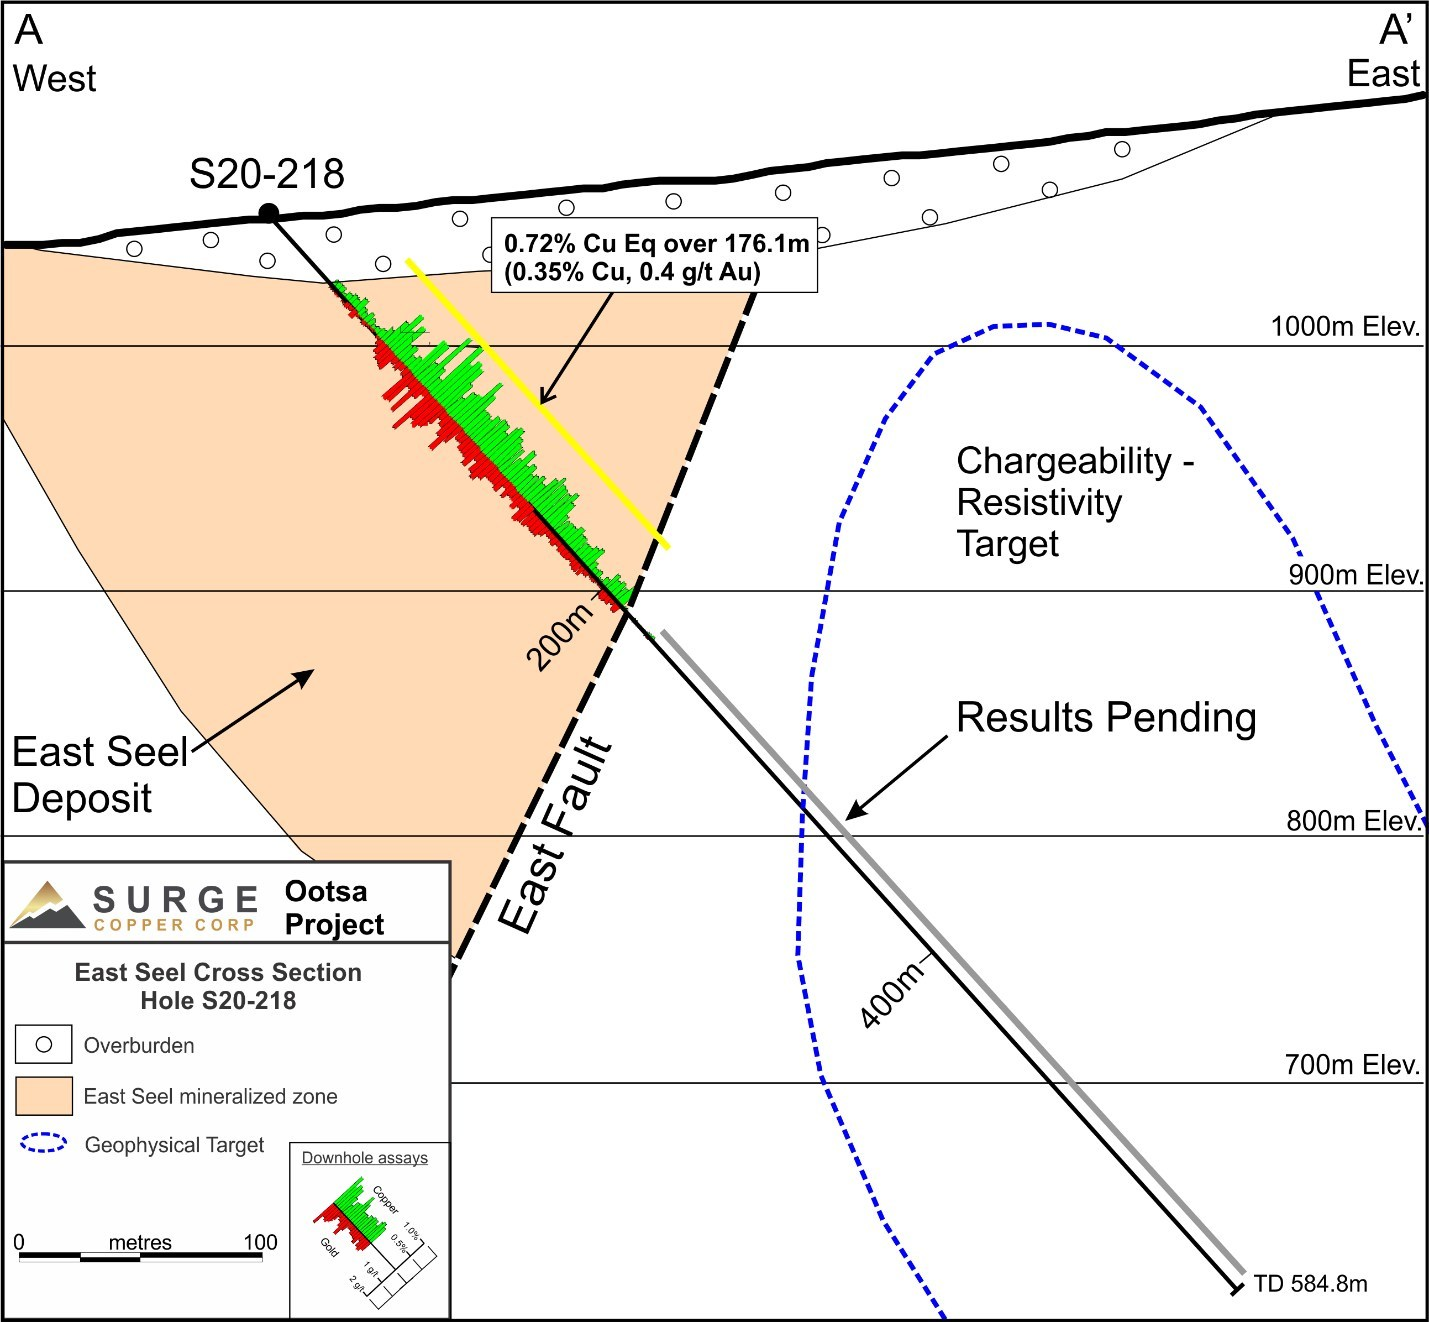 Figure 2: East Seel Cross Section Showing Hole S20-218 (CNW Group/Surge Copper Corp.)